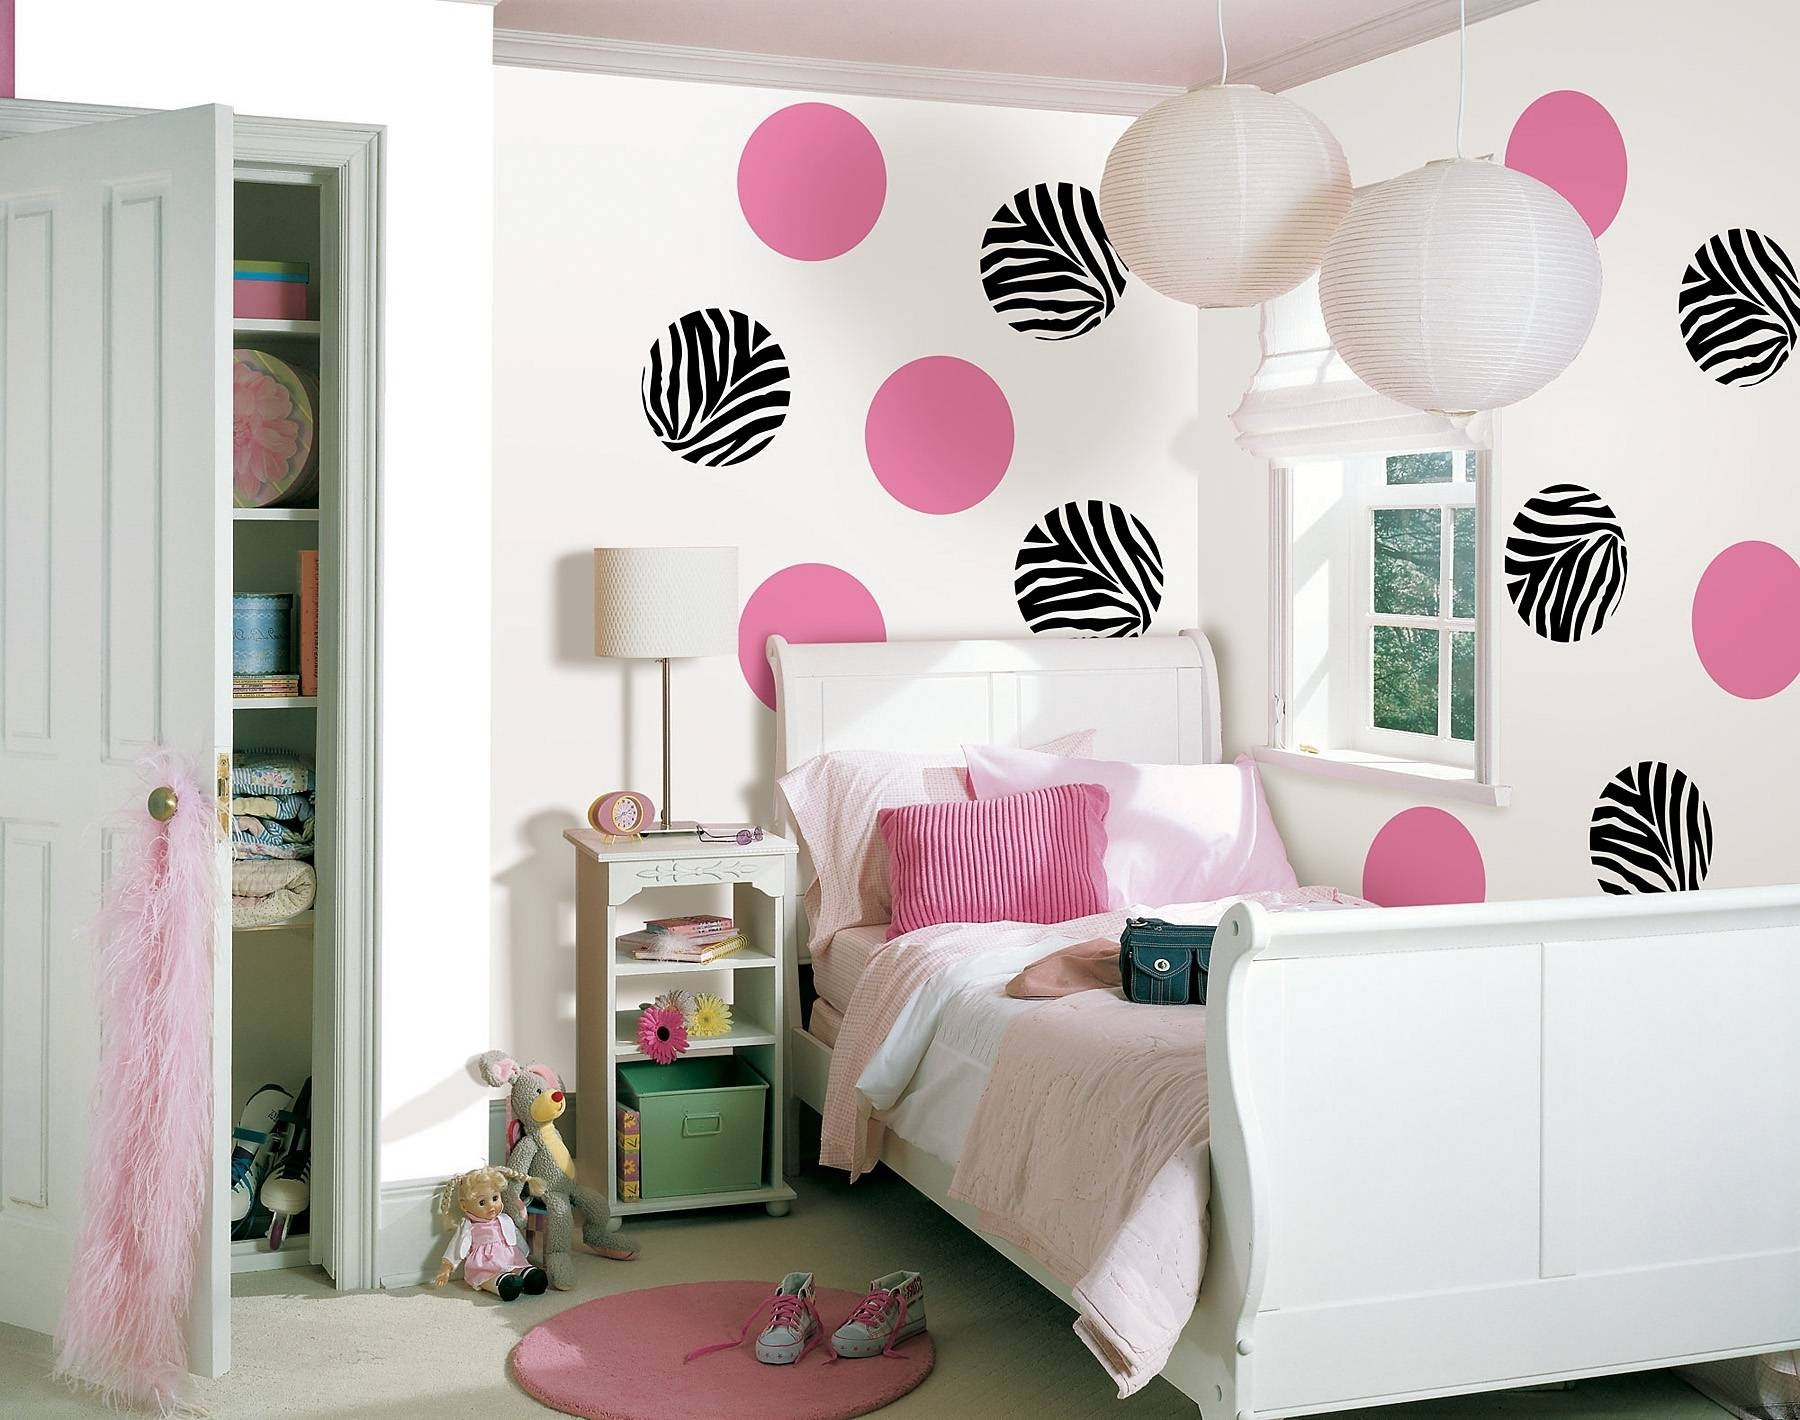 Teens Room : Diy Stenciled Wall Easy Diy Amp Teen Room Decor Pertaining To Most Popular Wall Art For Teenagers (View 21 of 25)